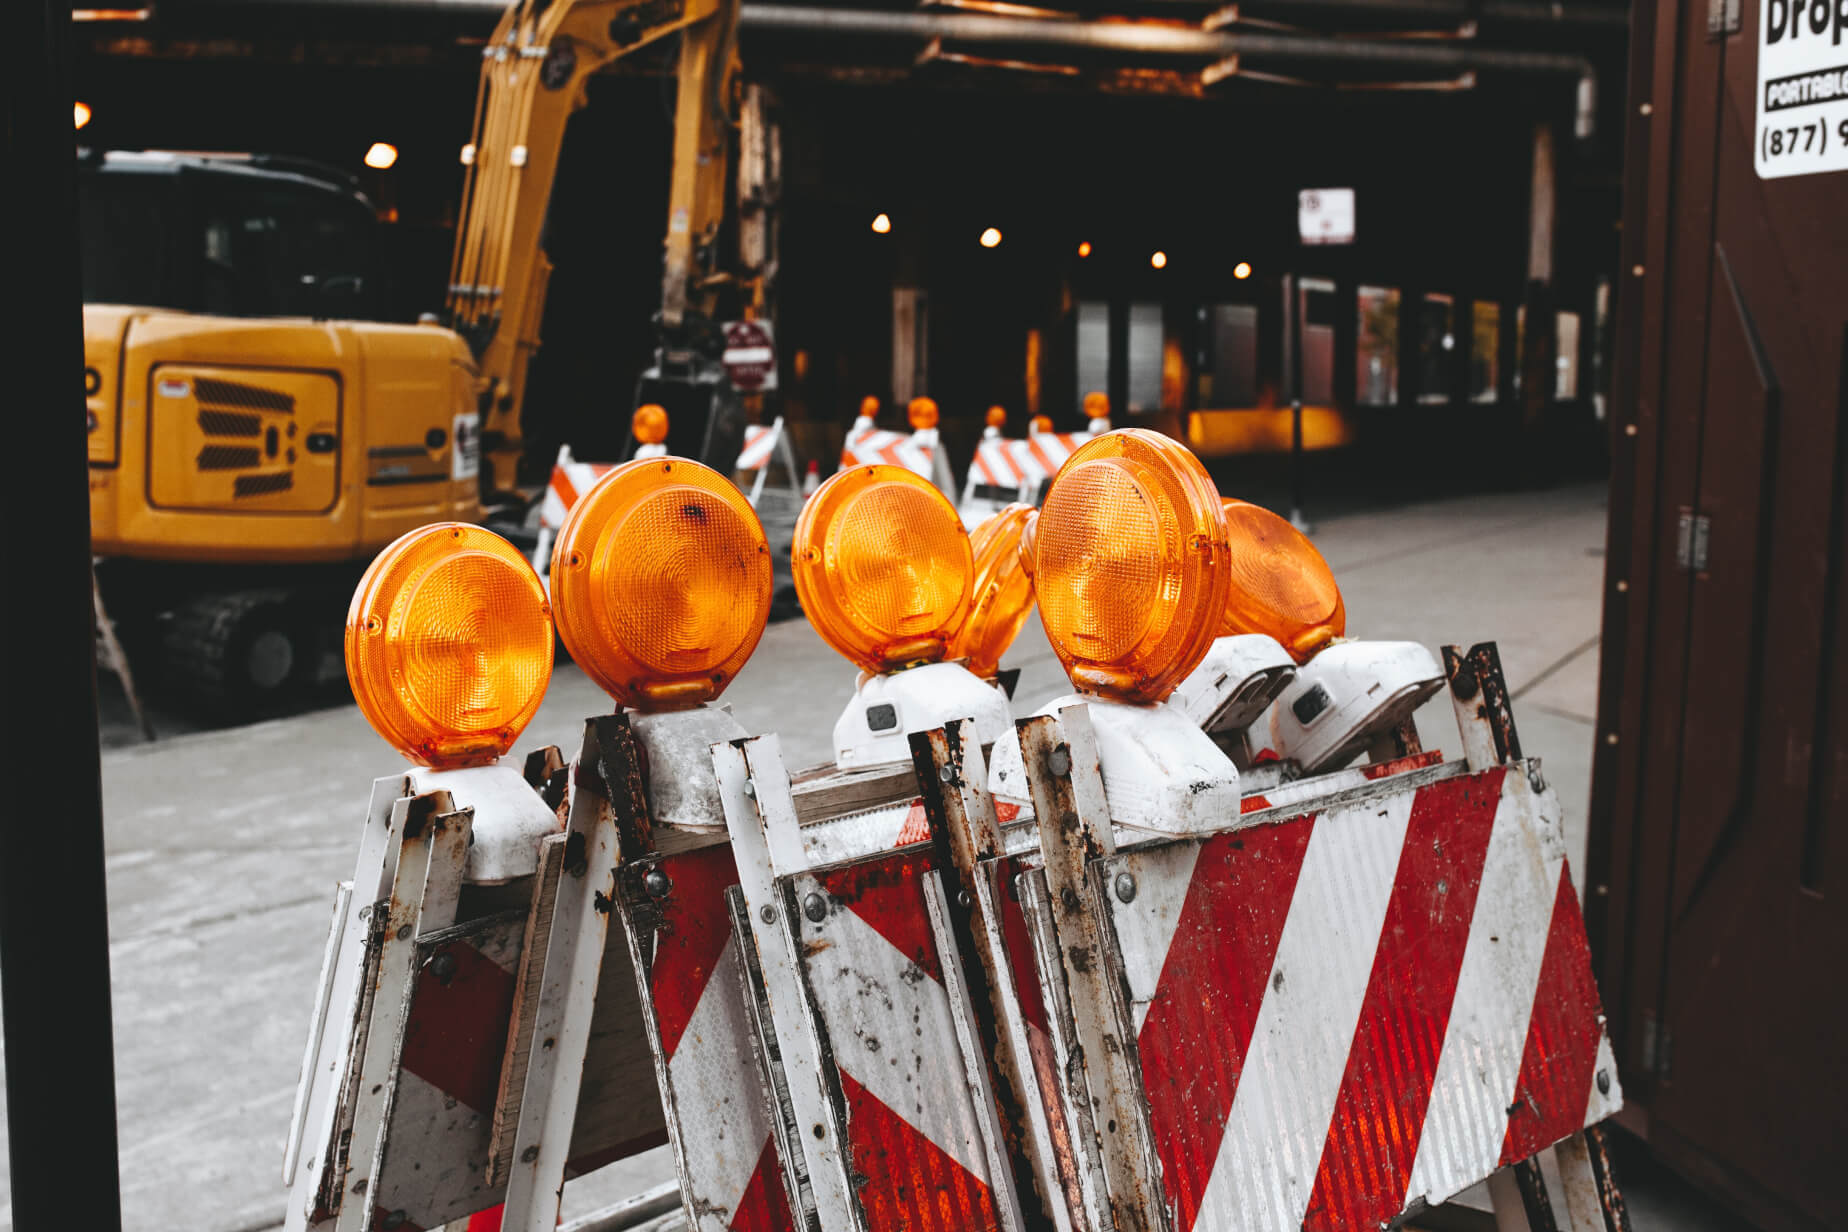 Do small businesses have to follow OSHA?